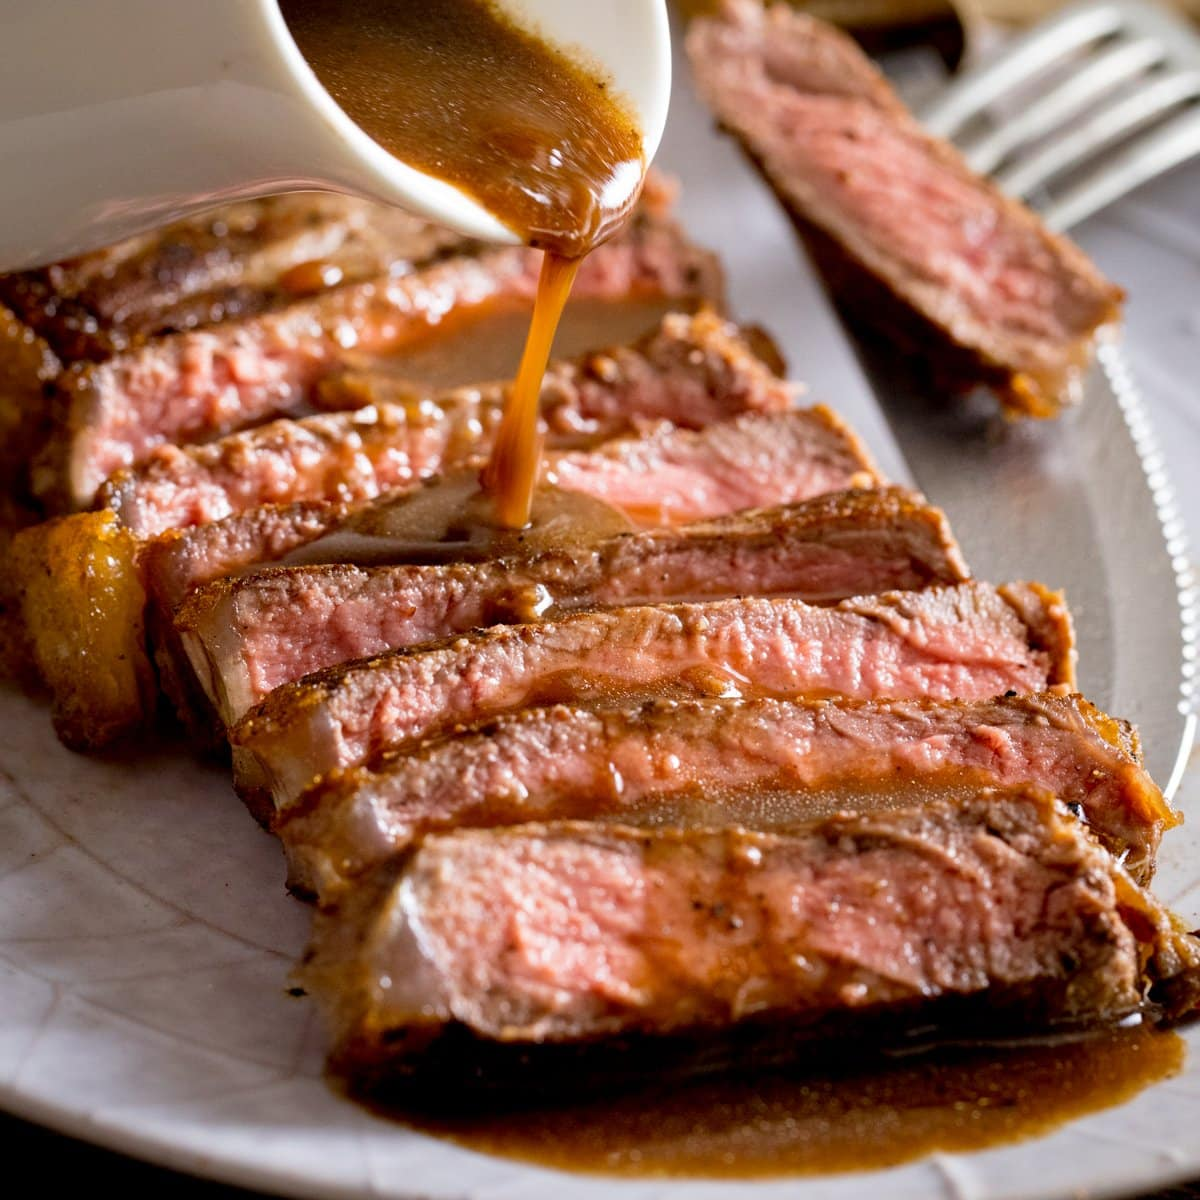 Sliced and cooked steak with red wine jus being poured over the top from a white jug, a fork with steak on it is on the side of the plate